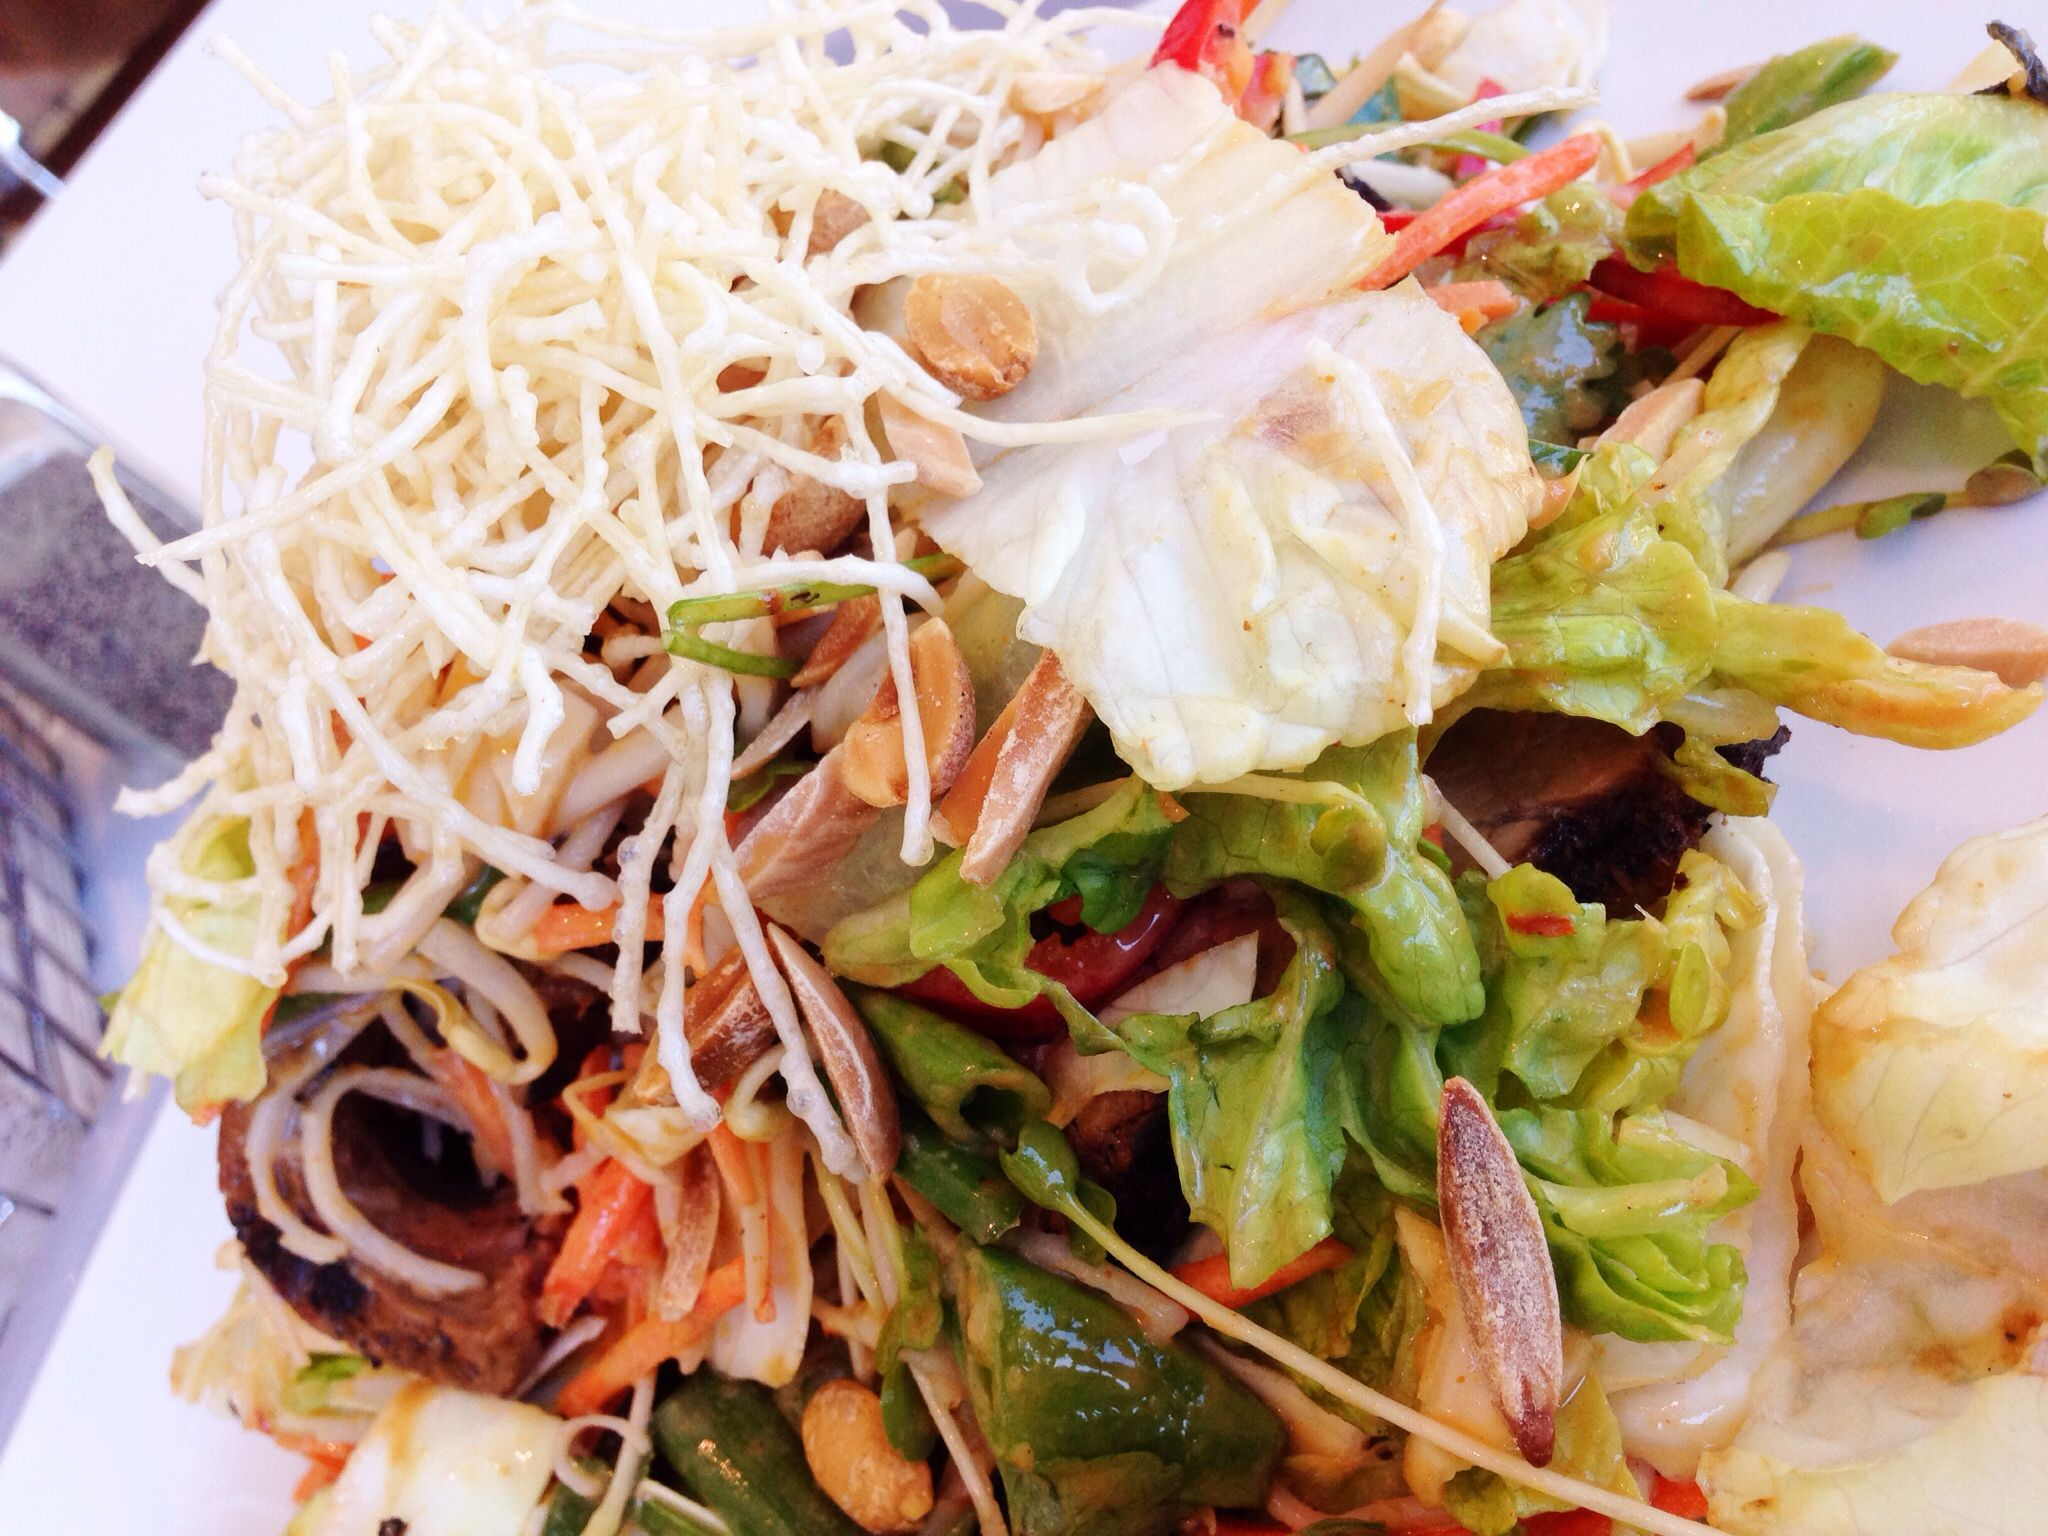 Thai Beef Salad: slices of red curry flank steak tossed with green onions, cabbage, romaine, rice noodles, sugar snaps, red bell pepper, cilantro and carrot, tossed in a warm peanut dressing.